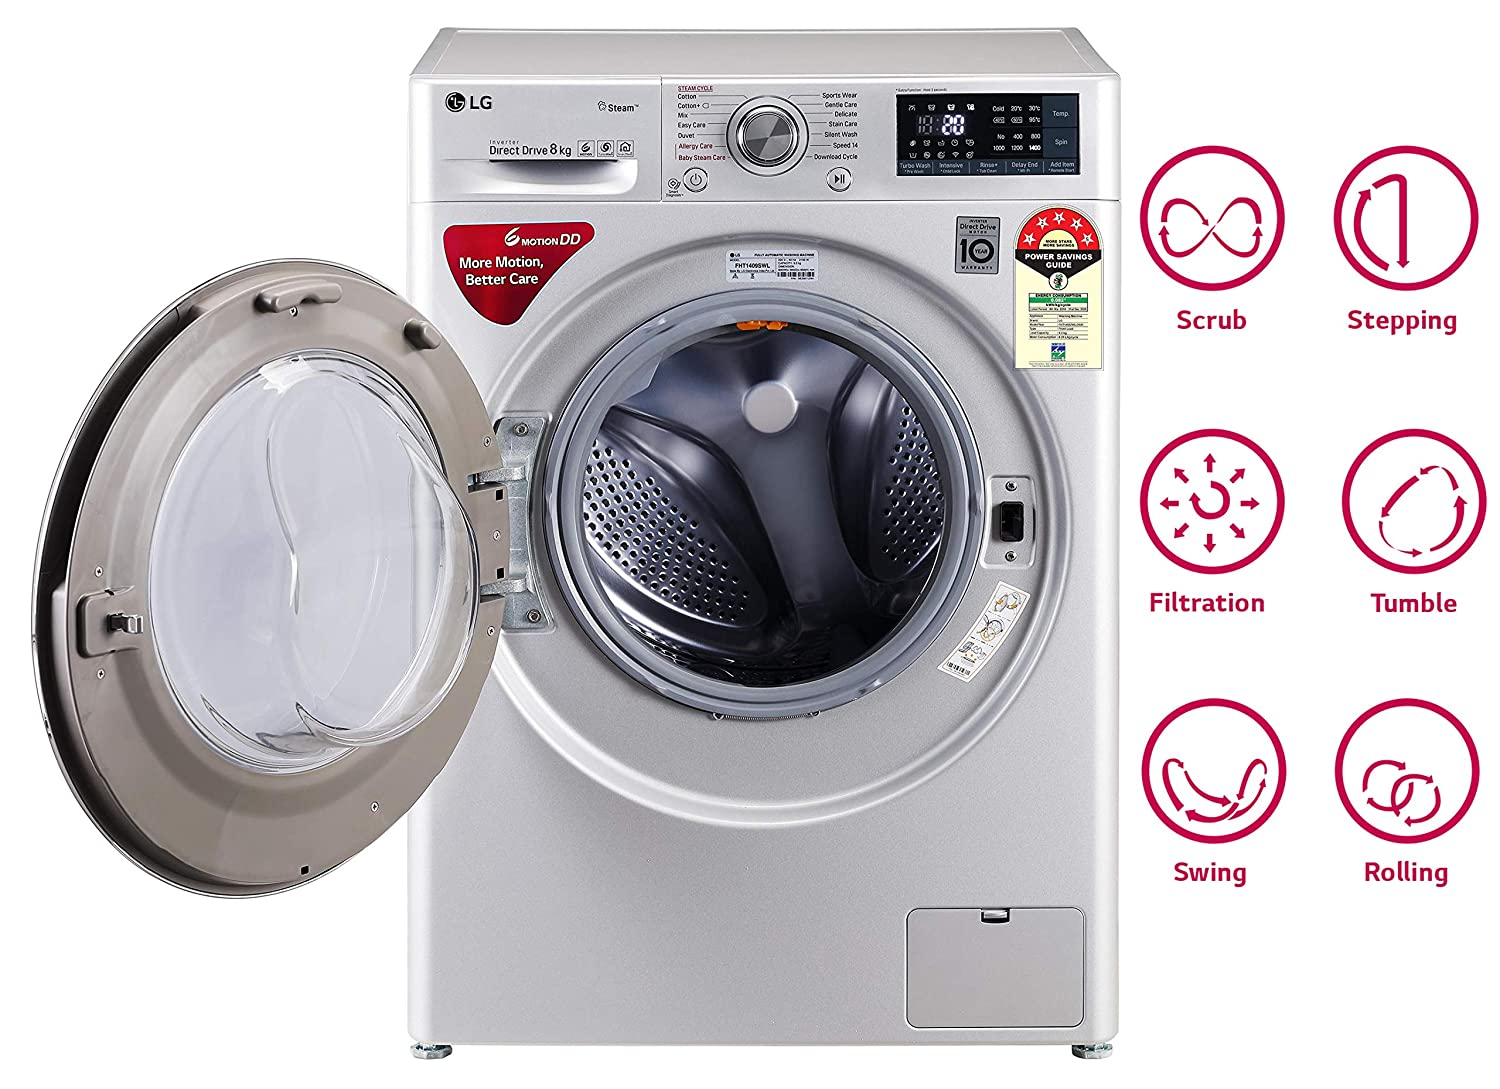 6 directions of the 6 Motion Direct Drive Technology of LG washing machine.